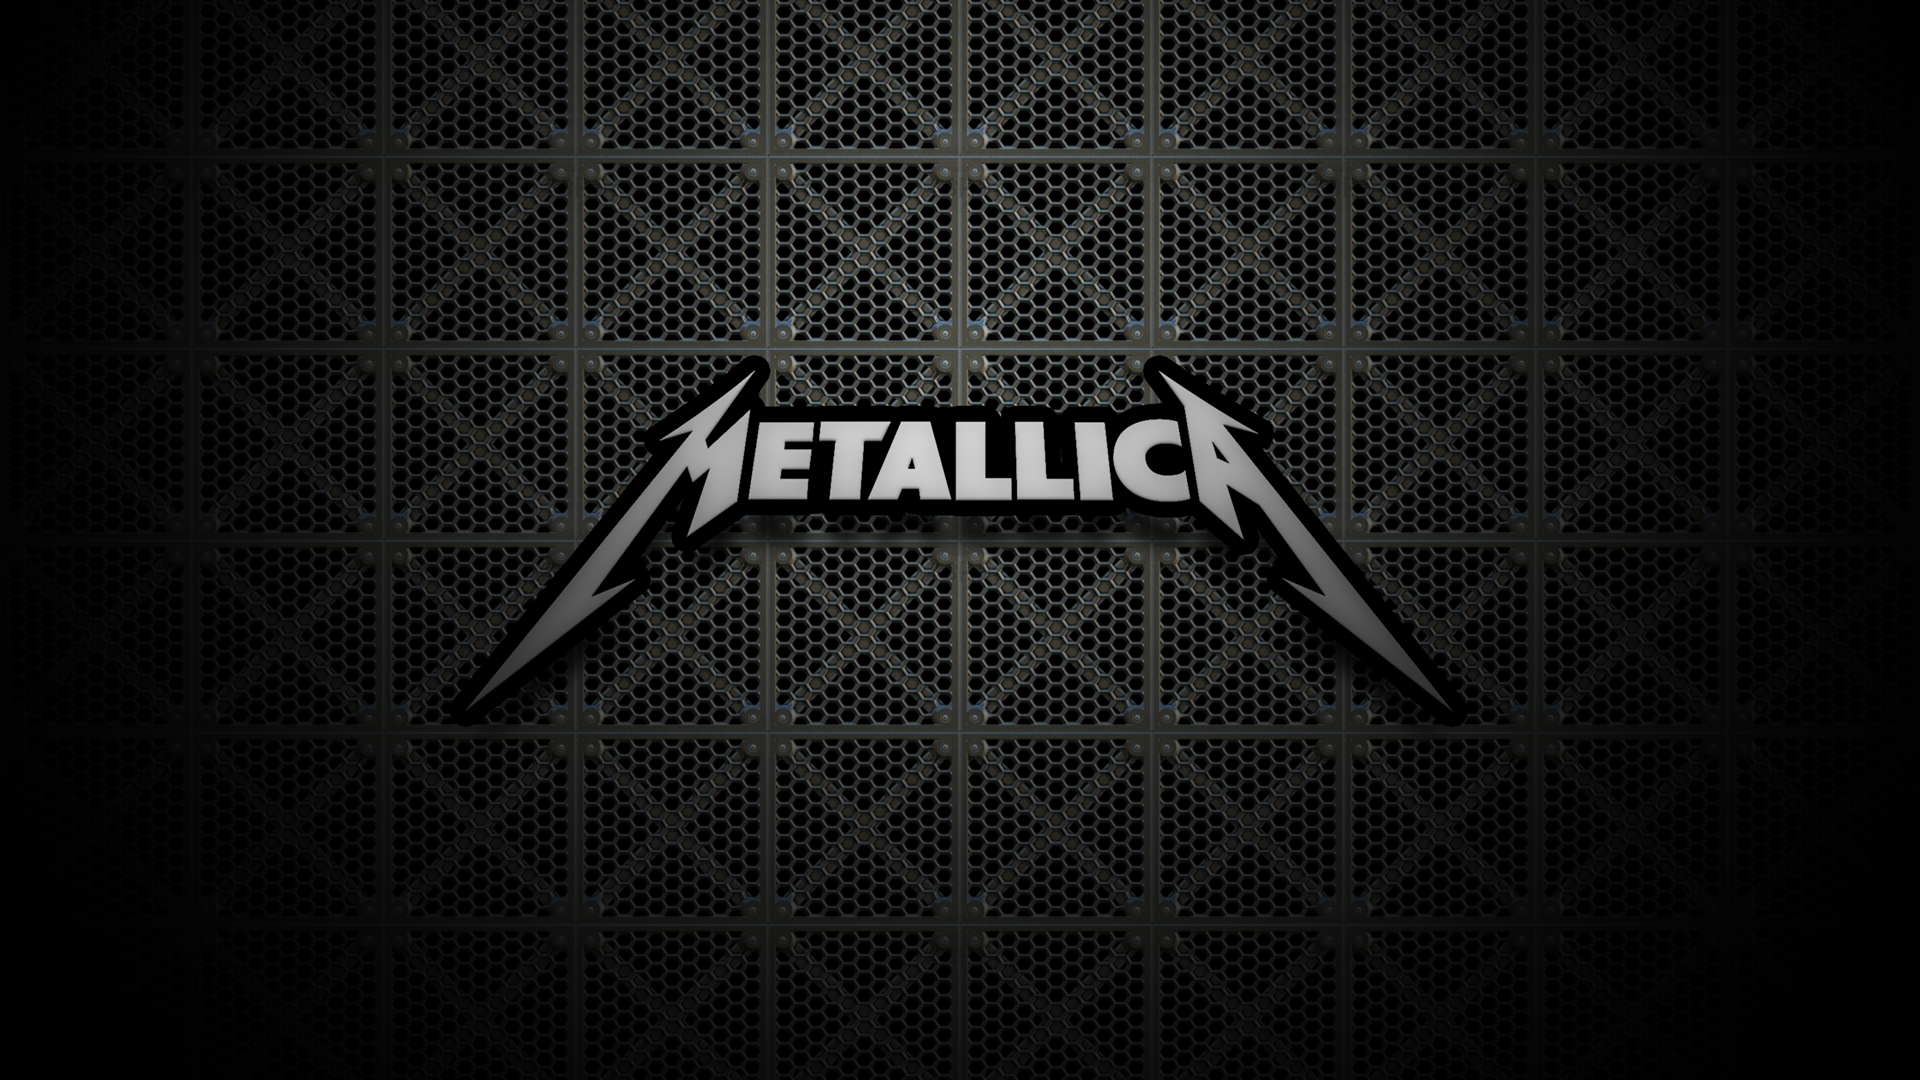 Metallica Wallpaper Ride The Lightning Metallica 1920x1080 1920x1080